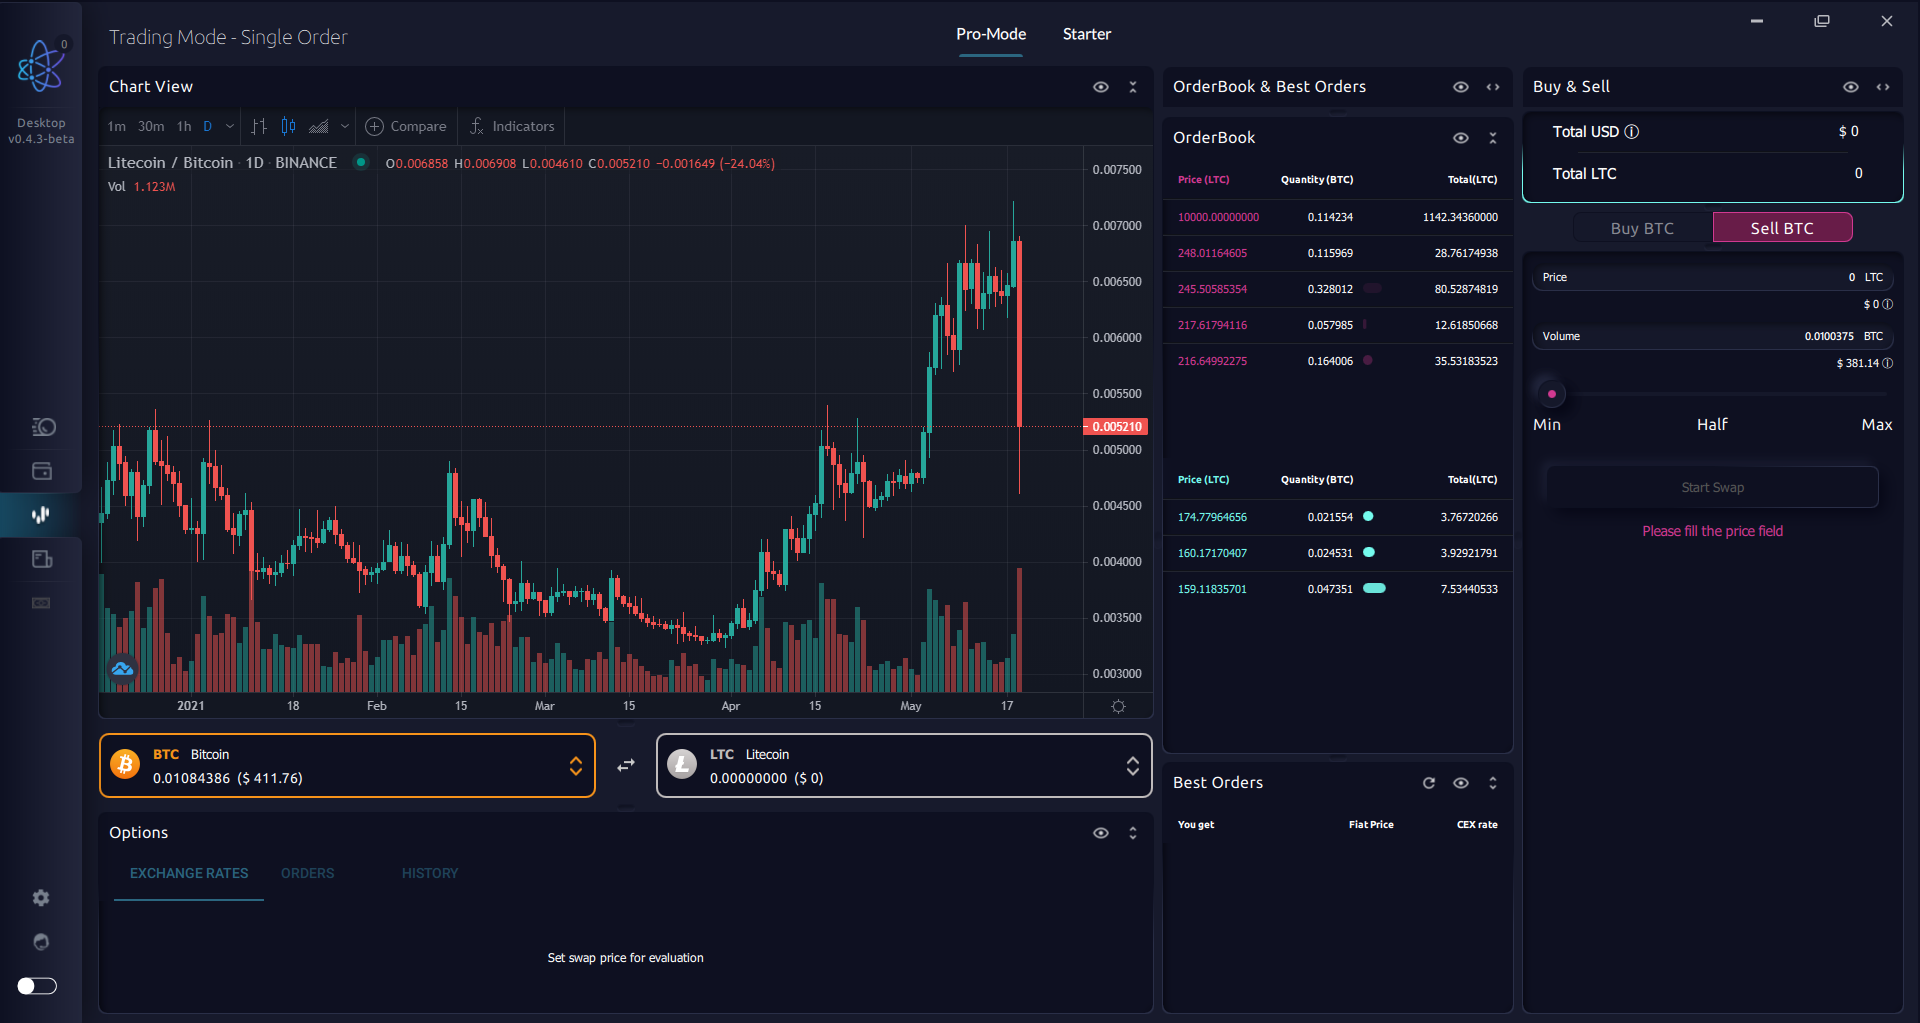 AtomicDEX trading interface